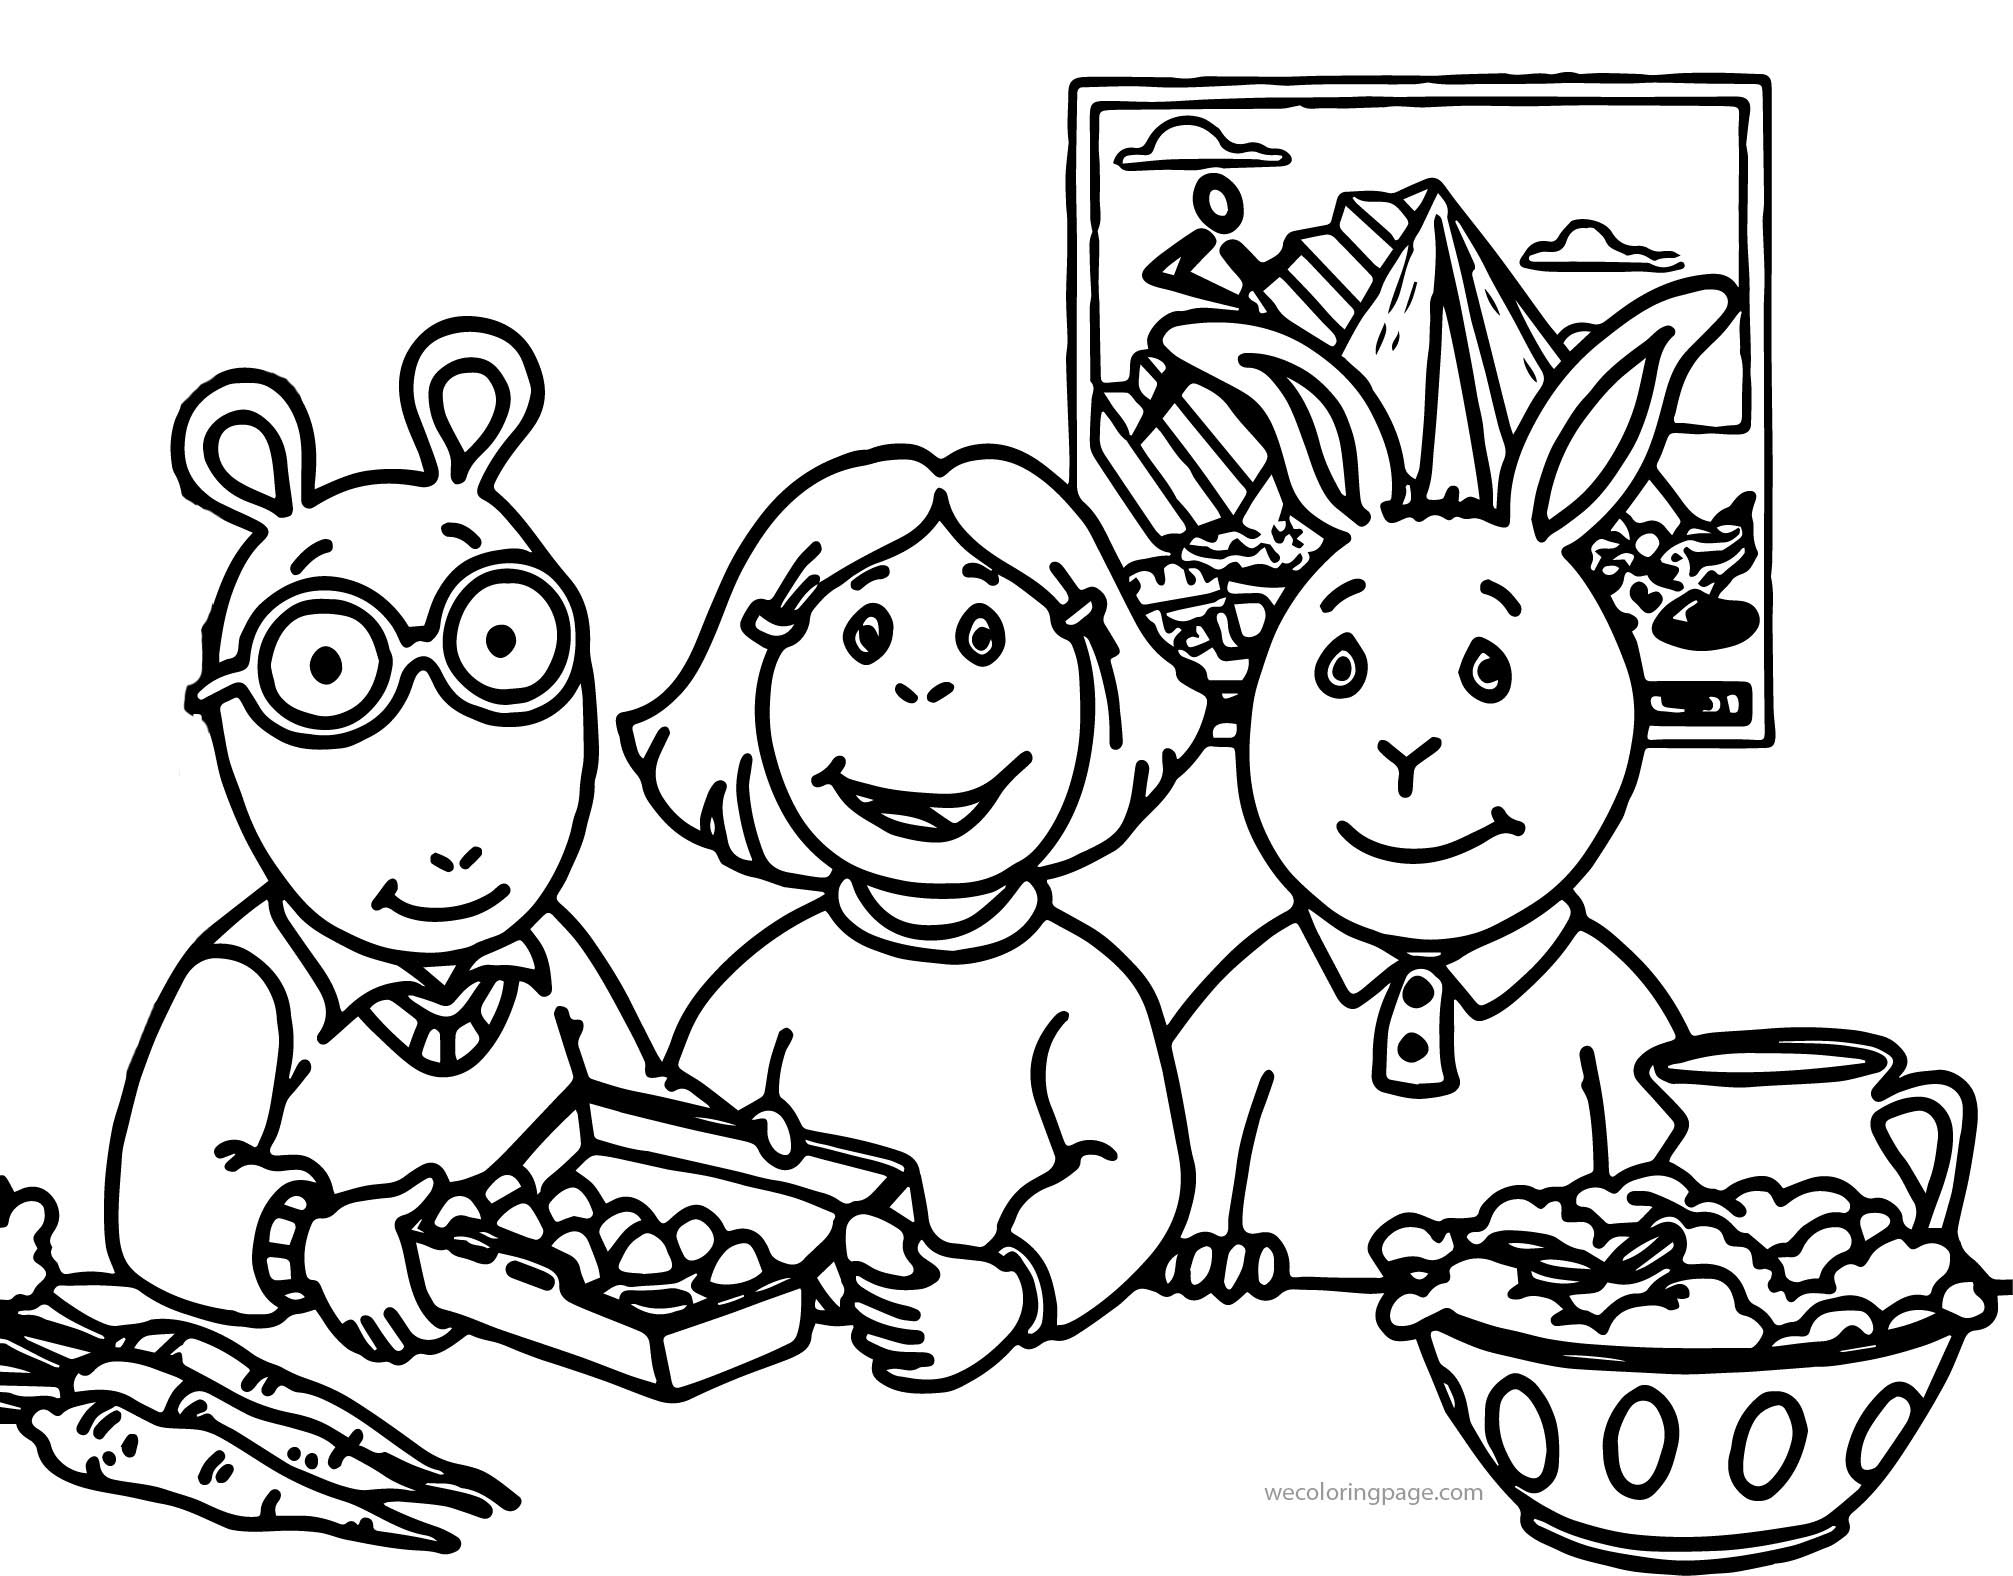 pbskids coloring pages - photo#30